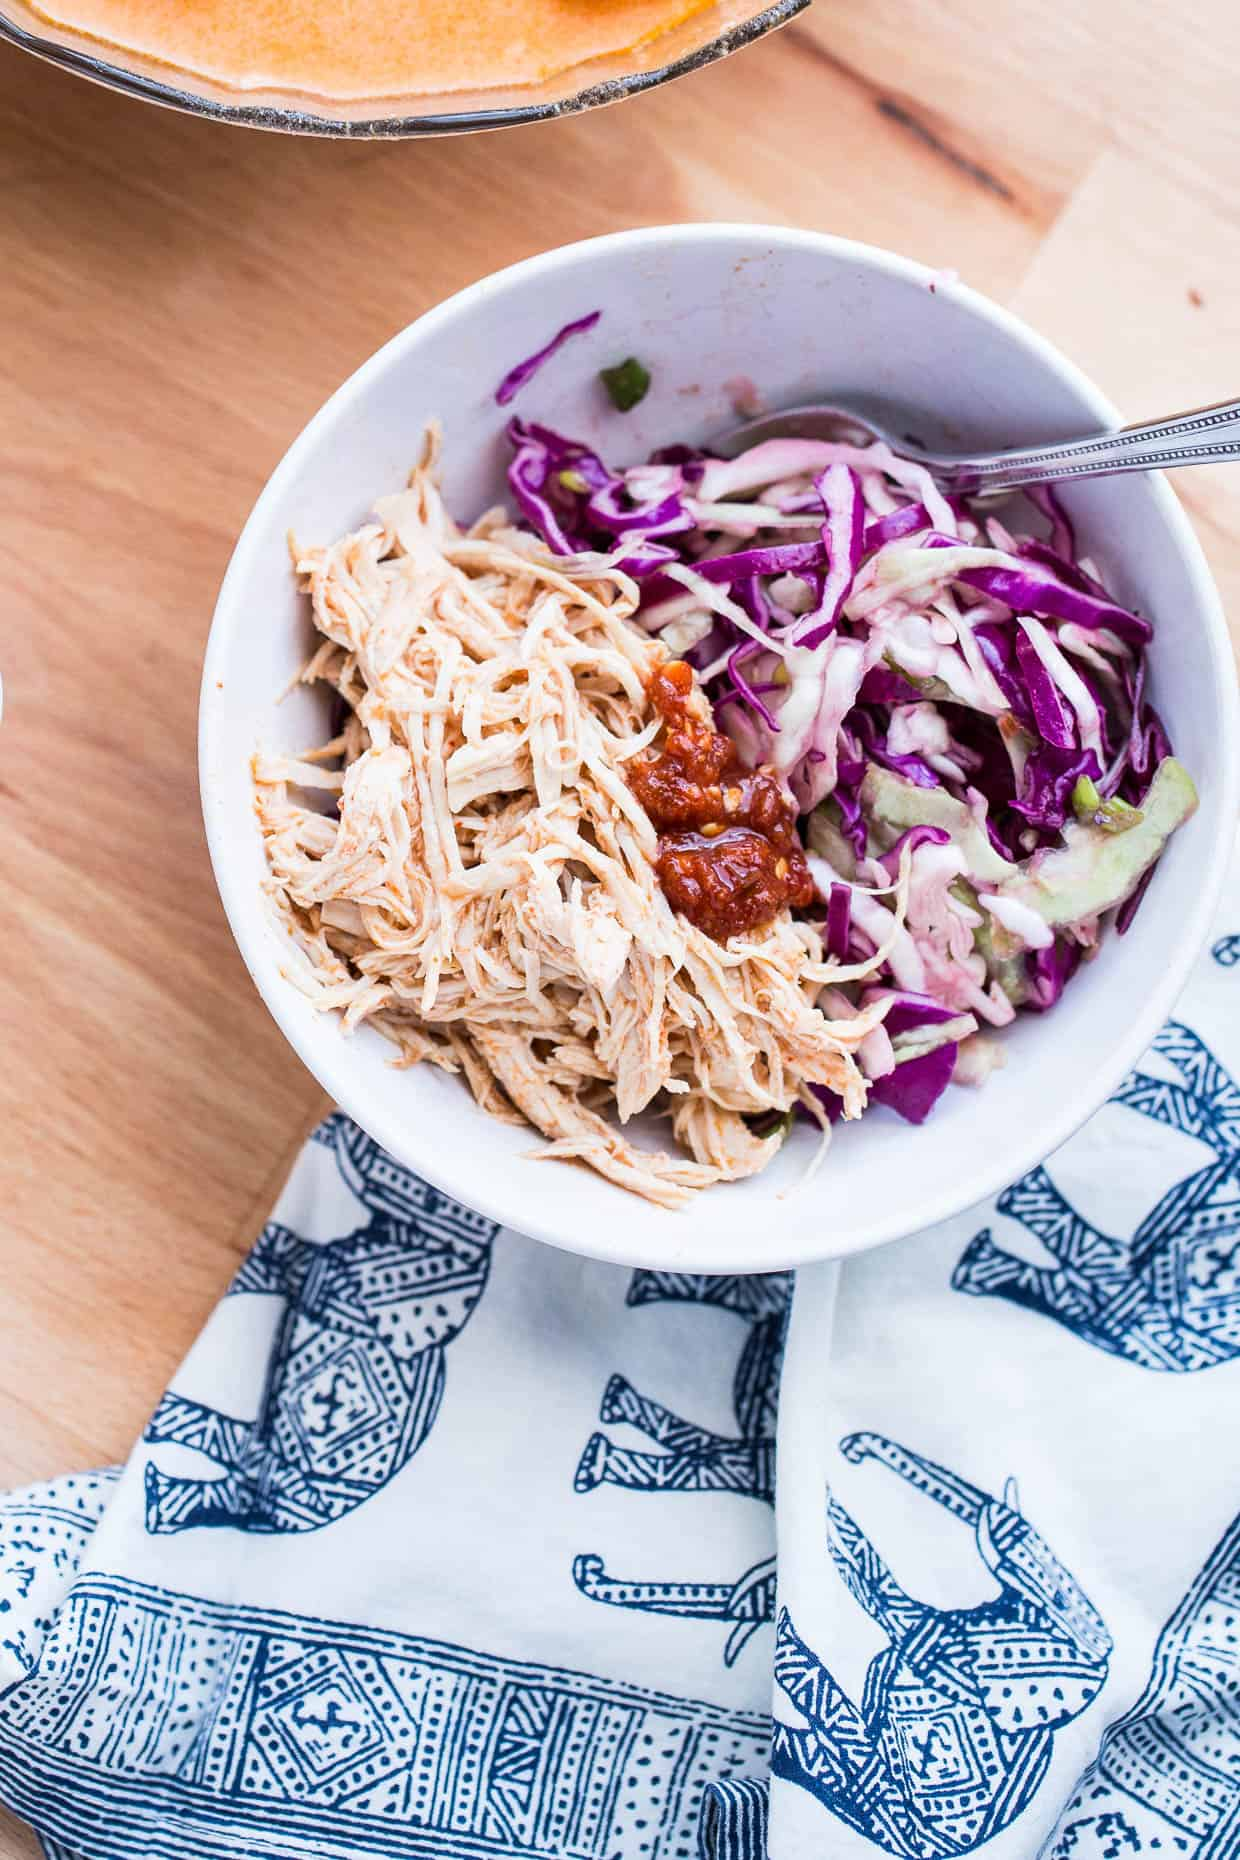 Instant Pot Shredded Red Curry Chicken & Sweet Thai Slaw   Whole30 recipes   paleo recipes   perrysplate.com